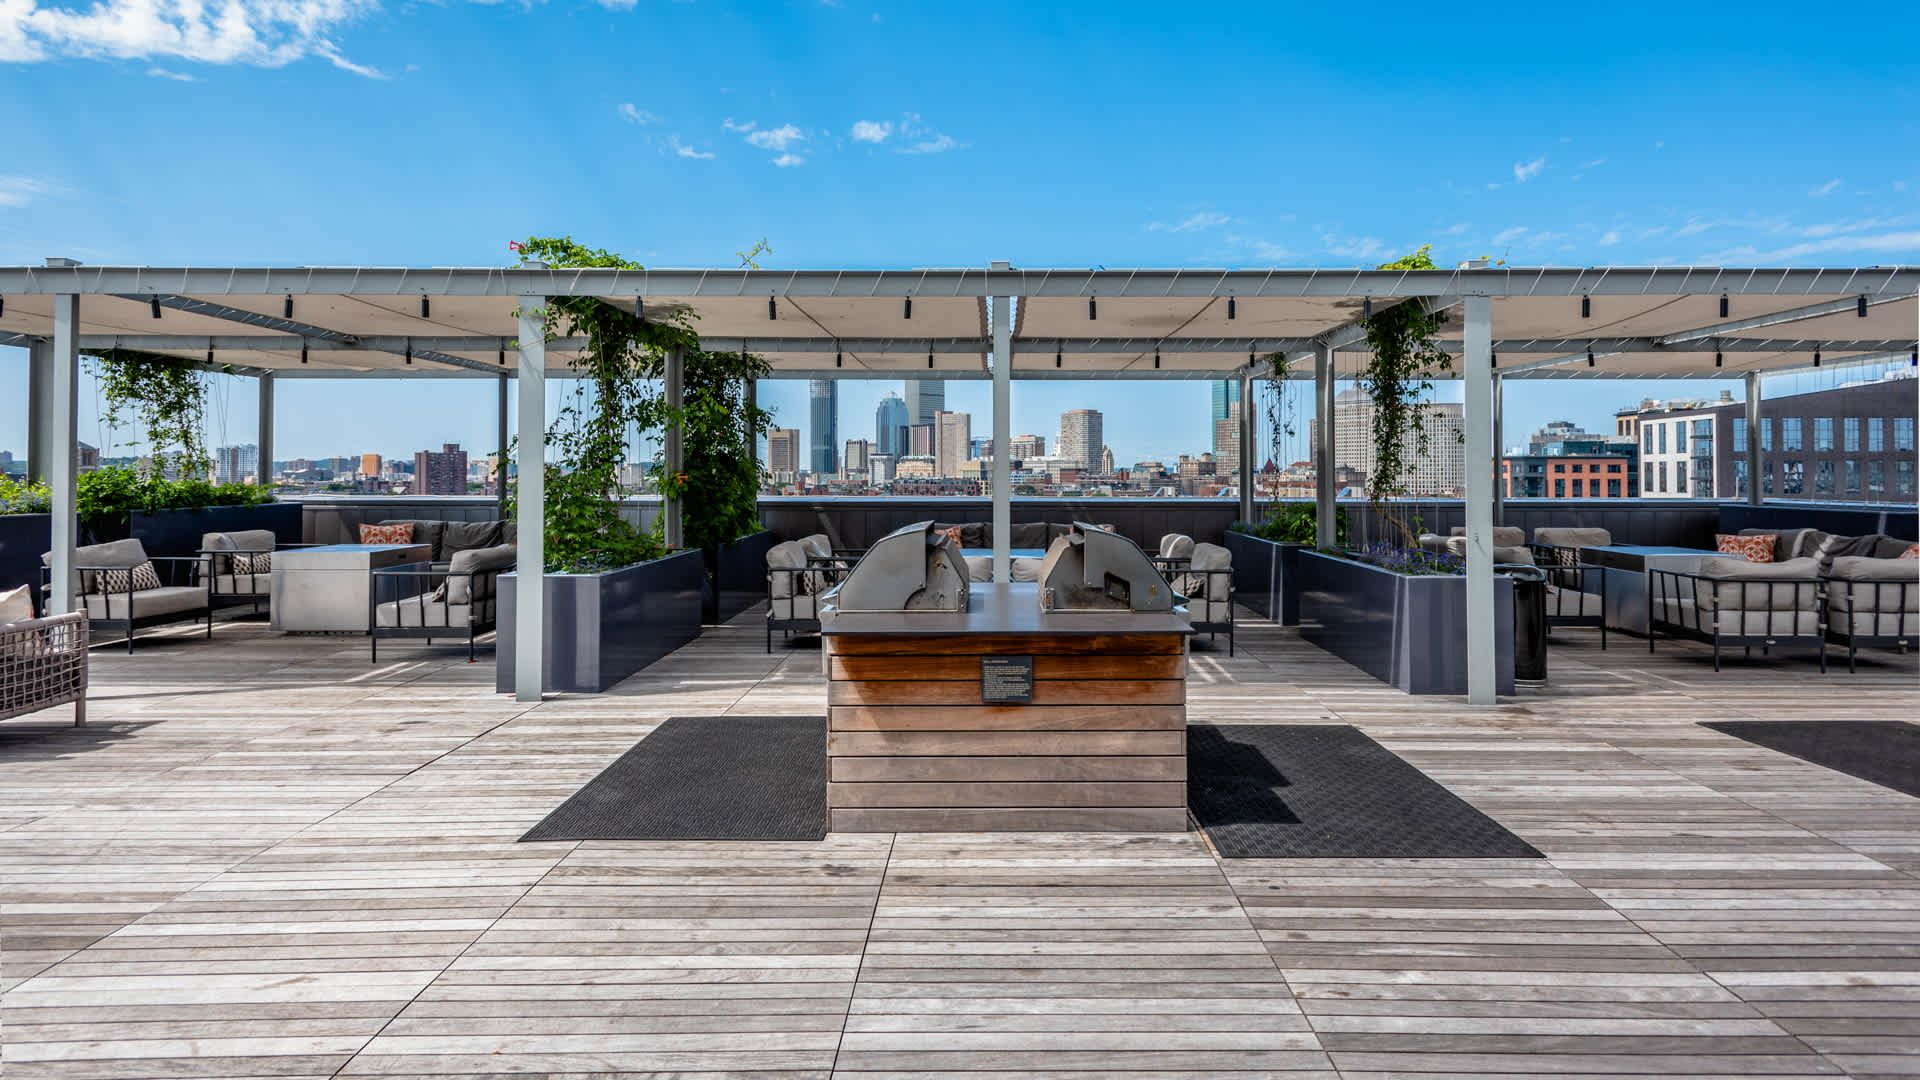 Troy Boston Apartments Rooftop Patio Rooftop Design Apartment Rooftop Rooftop Patio